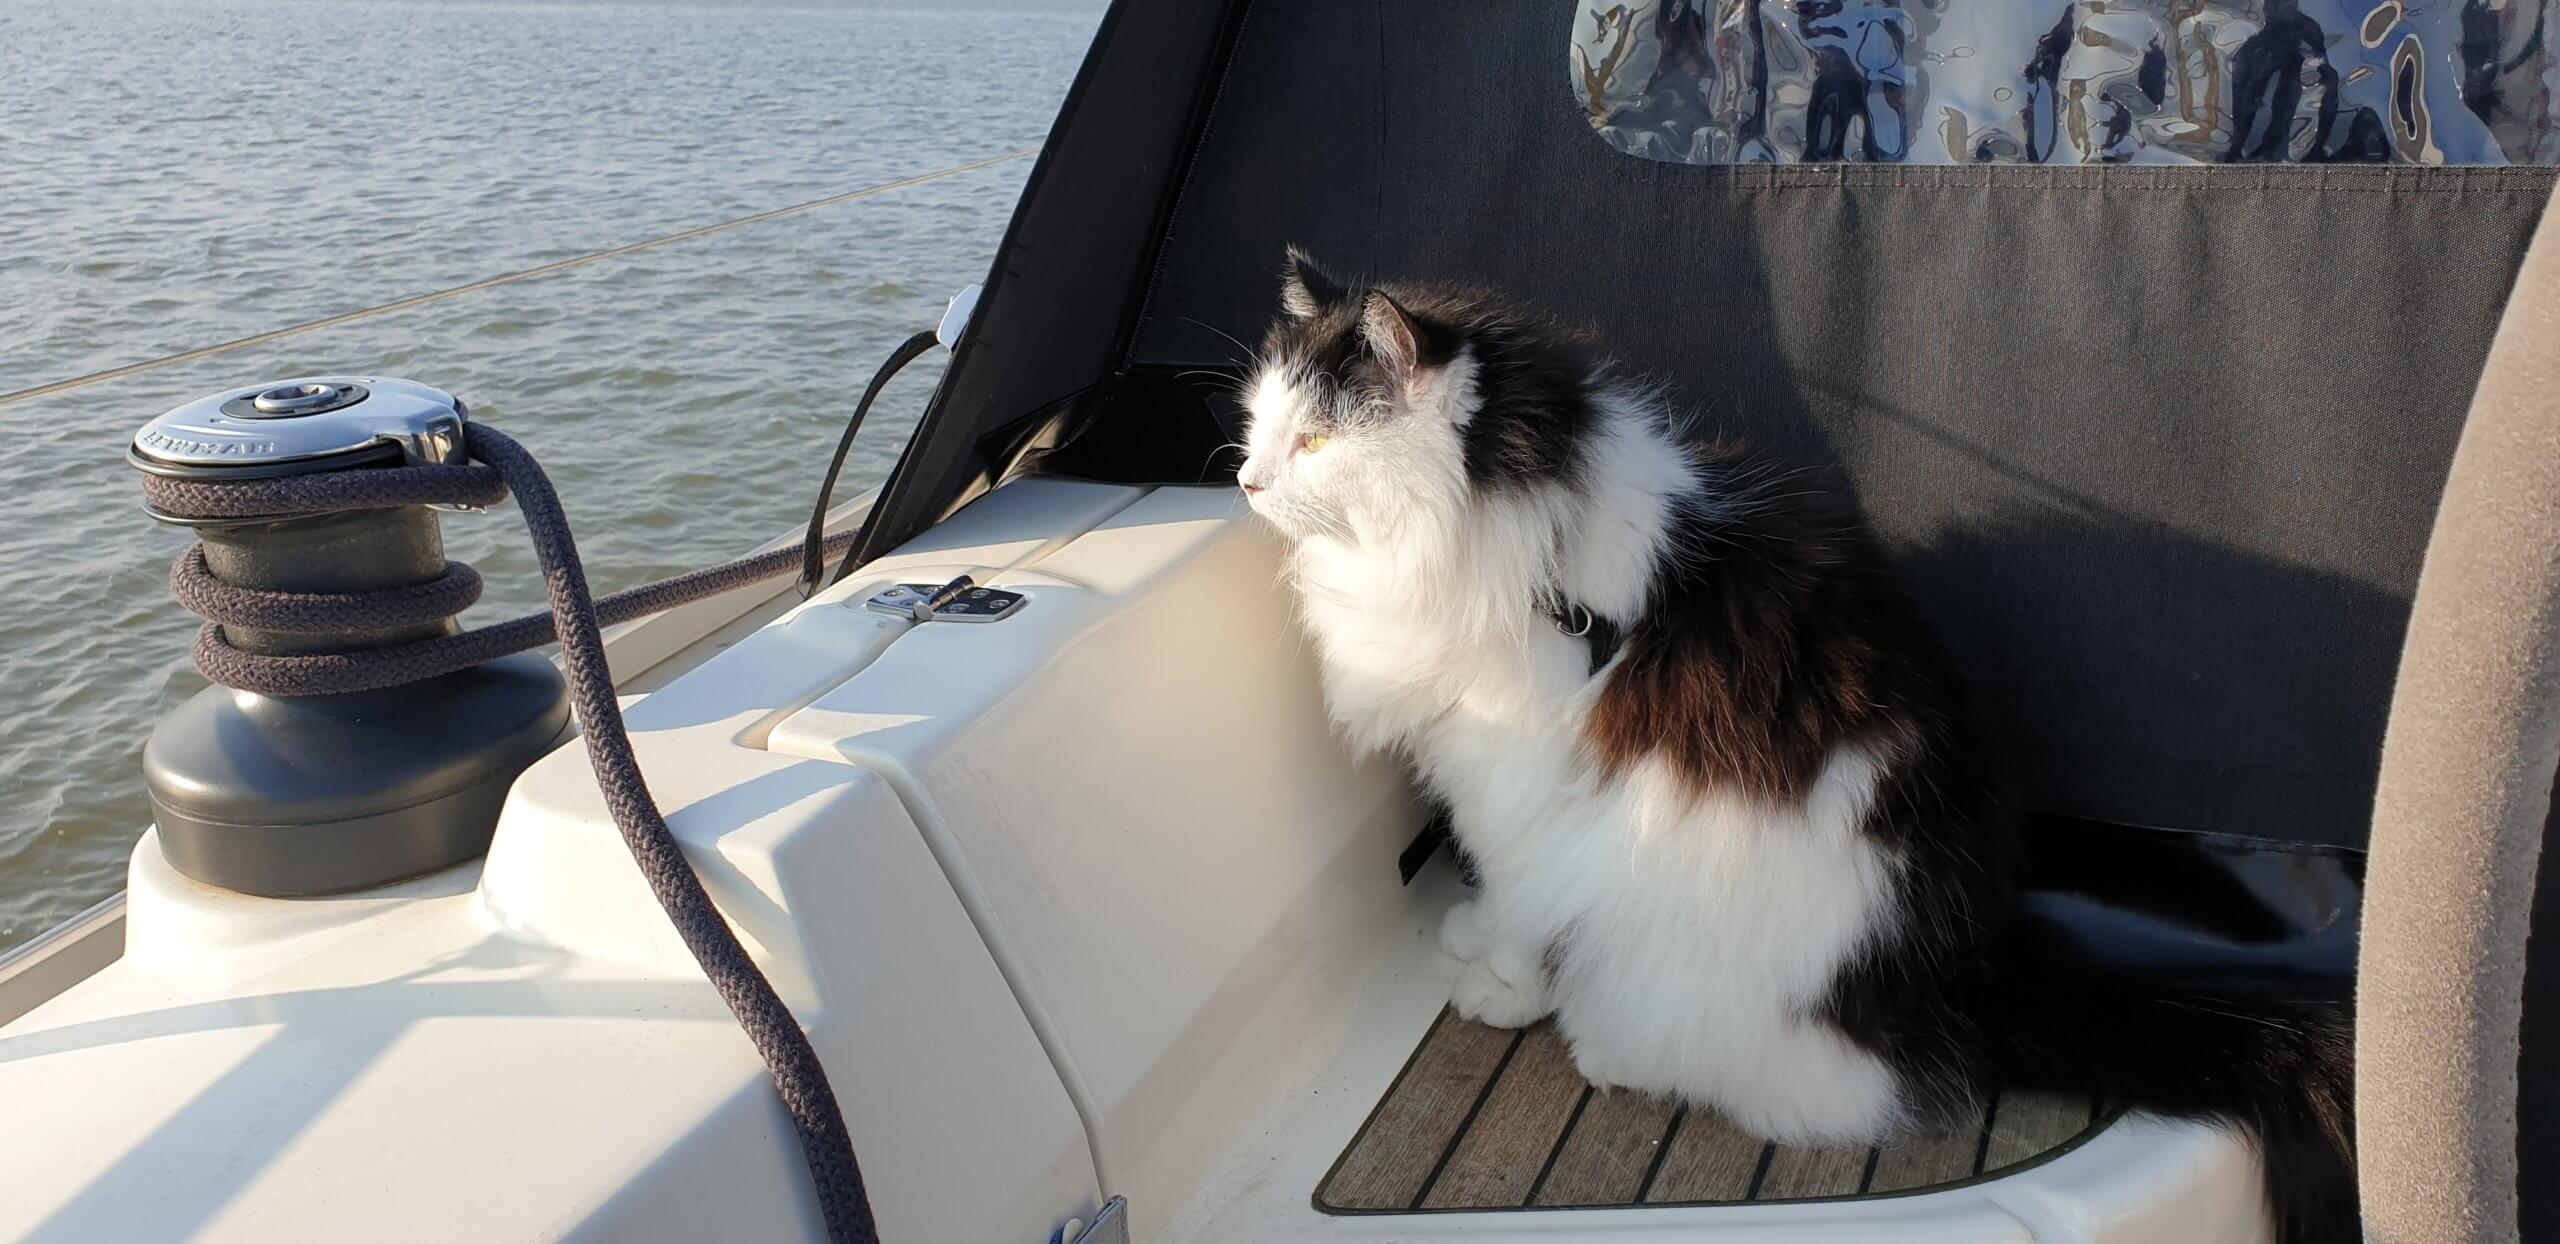 Bolle cat the sailor